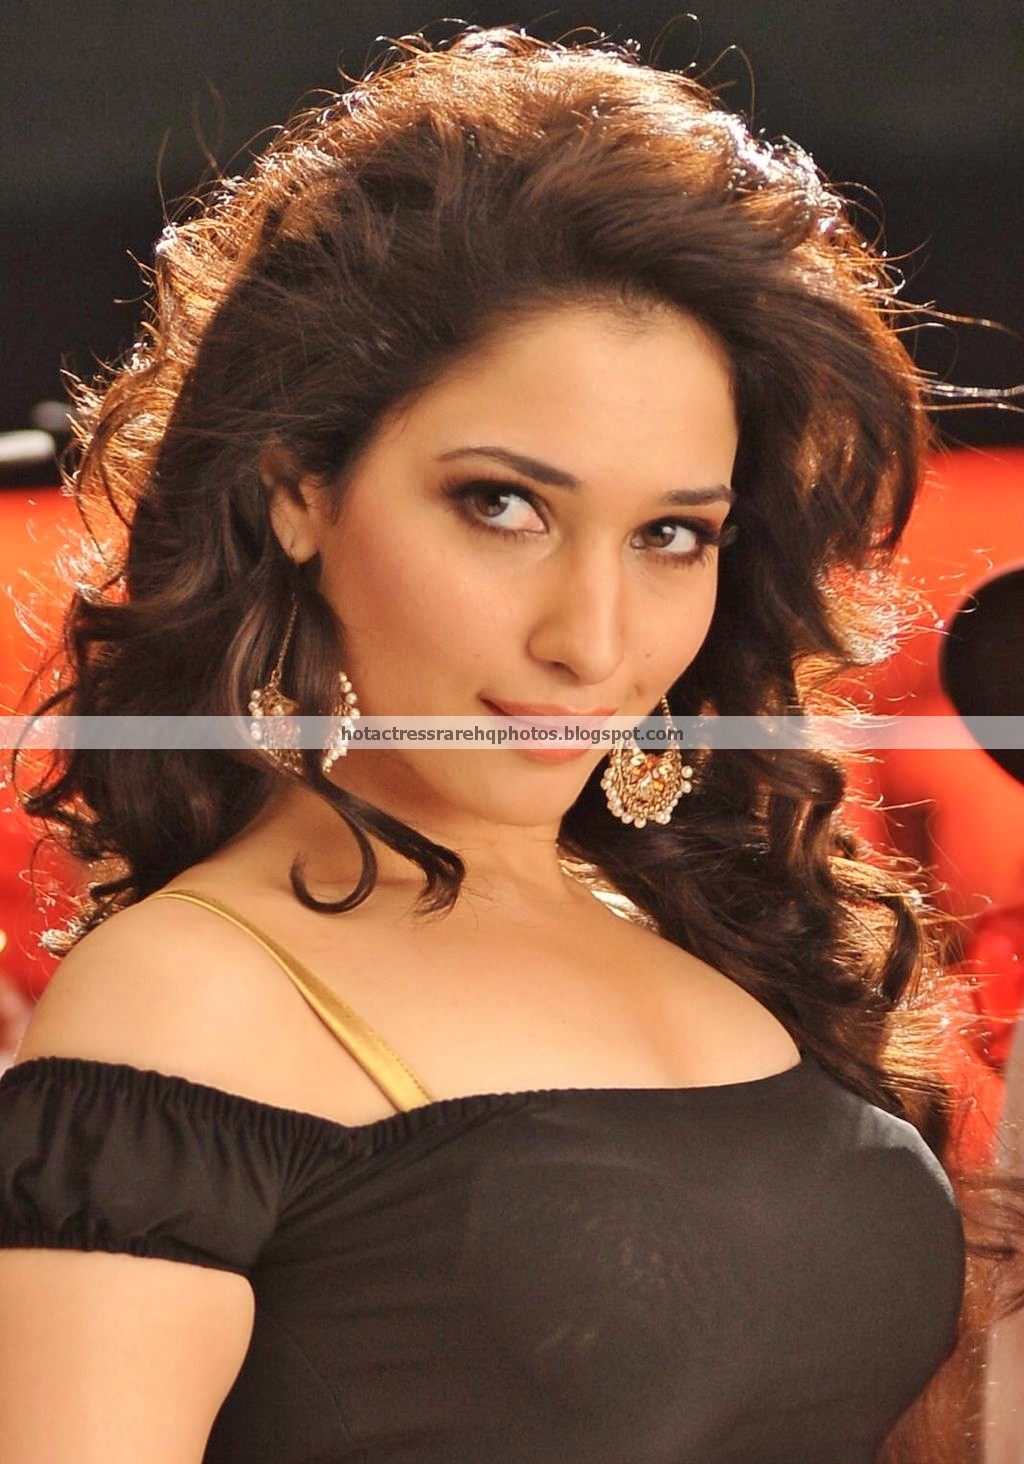 hot indian actress rare hq photos: actress tamanna bhatia hot navel